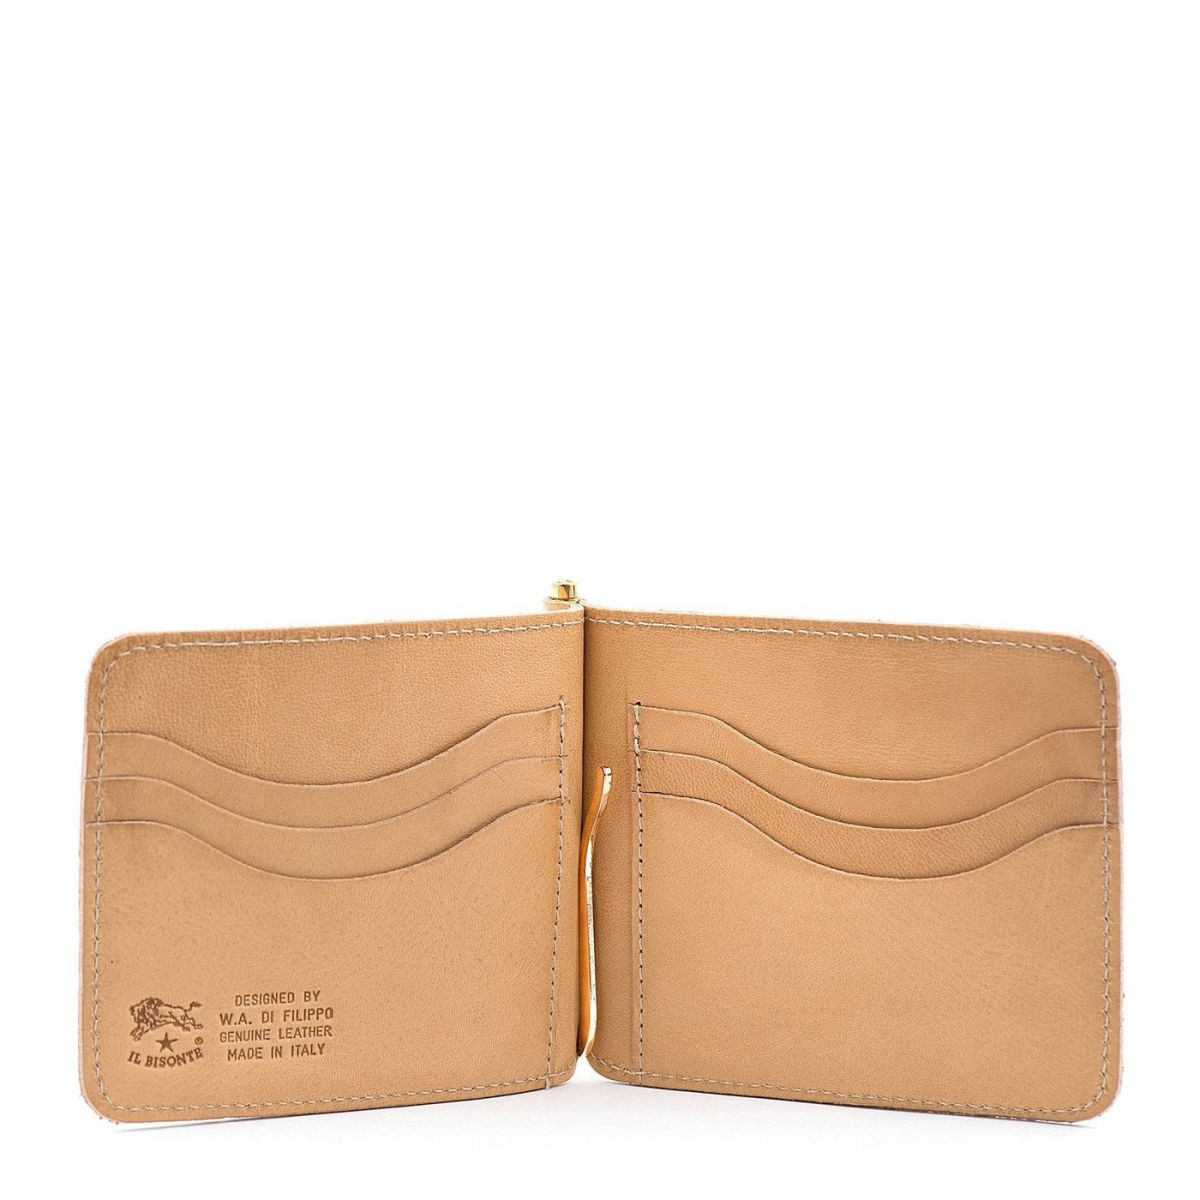 Men's Wallet in Cowhide Double Leather color Natural - SMW076 | Details